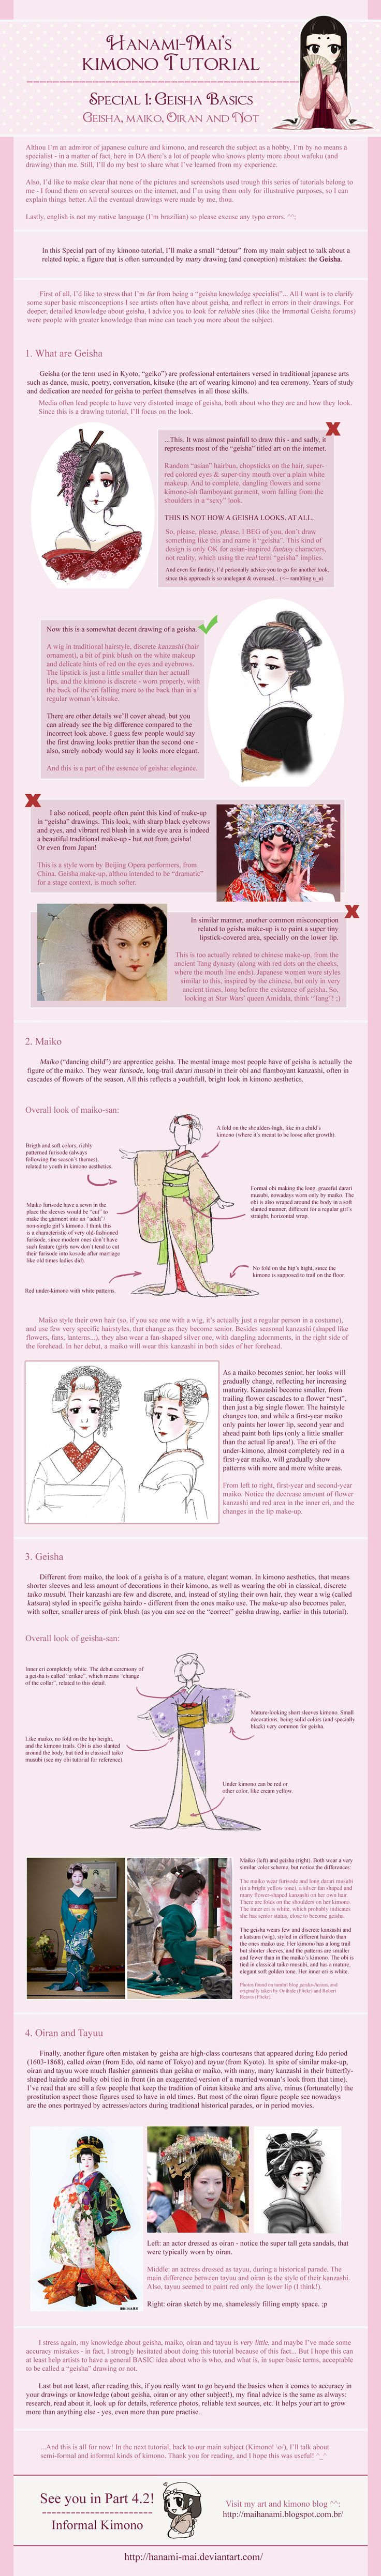 """Kimono Tutorial - Geisha Special by Hanami-Mai.deviantart.com on @deviantART - Part of a series of tutorials/infographics about kimono. This one specifically addresses geisha (including maiko and geiko) and oiran styles. There's a good deal of misconception on what counts as """"geisha"""". So this is a good run-down on what's really going on. Also, what most people consider """"geisha"""" is actually closer to what a maiko wears than a fully fledged geiko - things get LESS flamboyant over time, not…"""